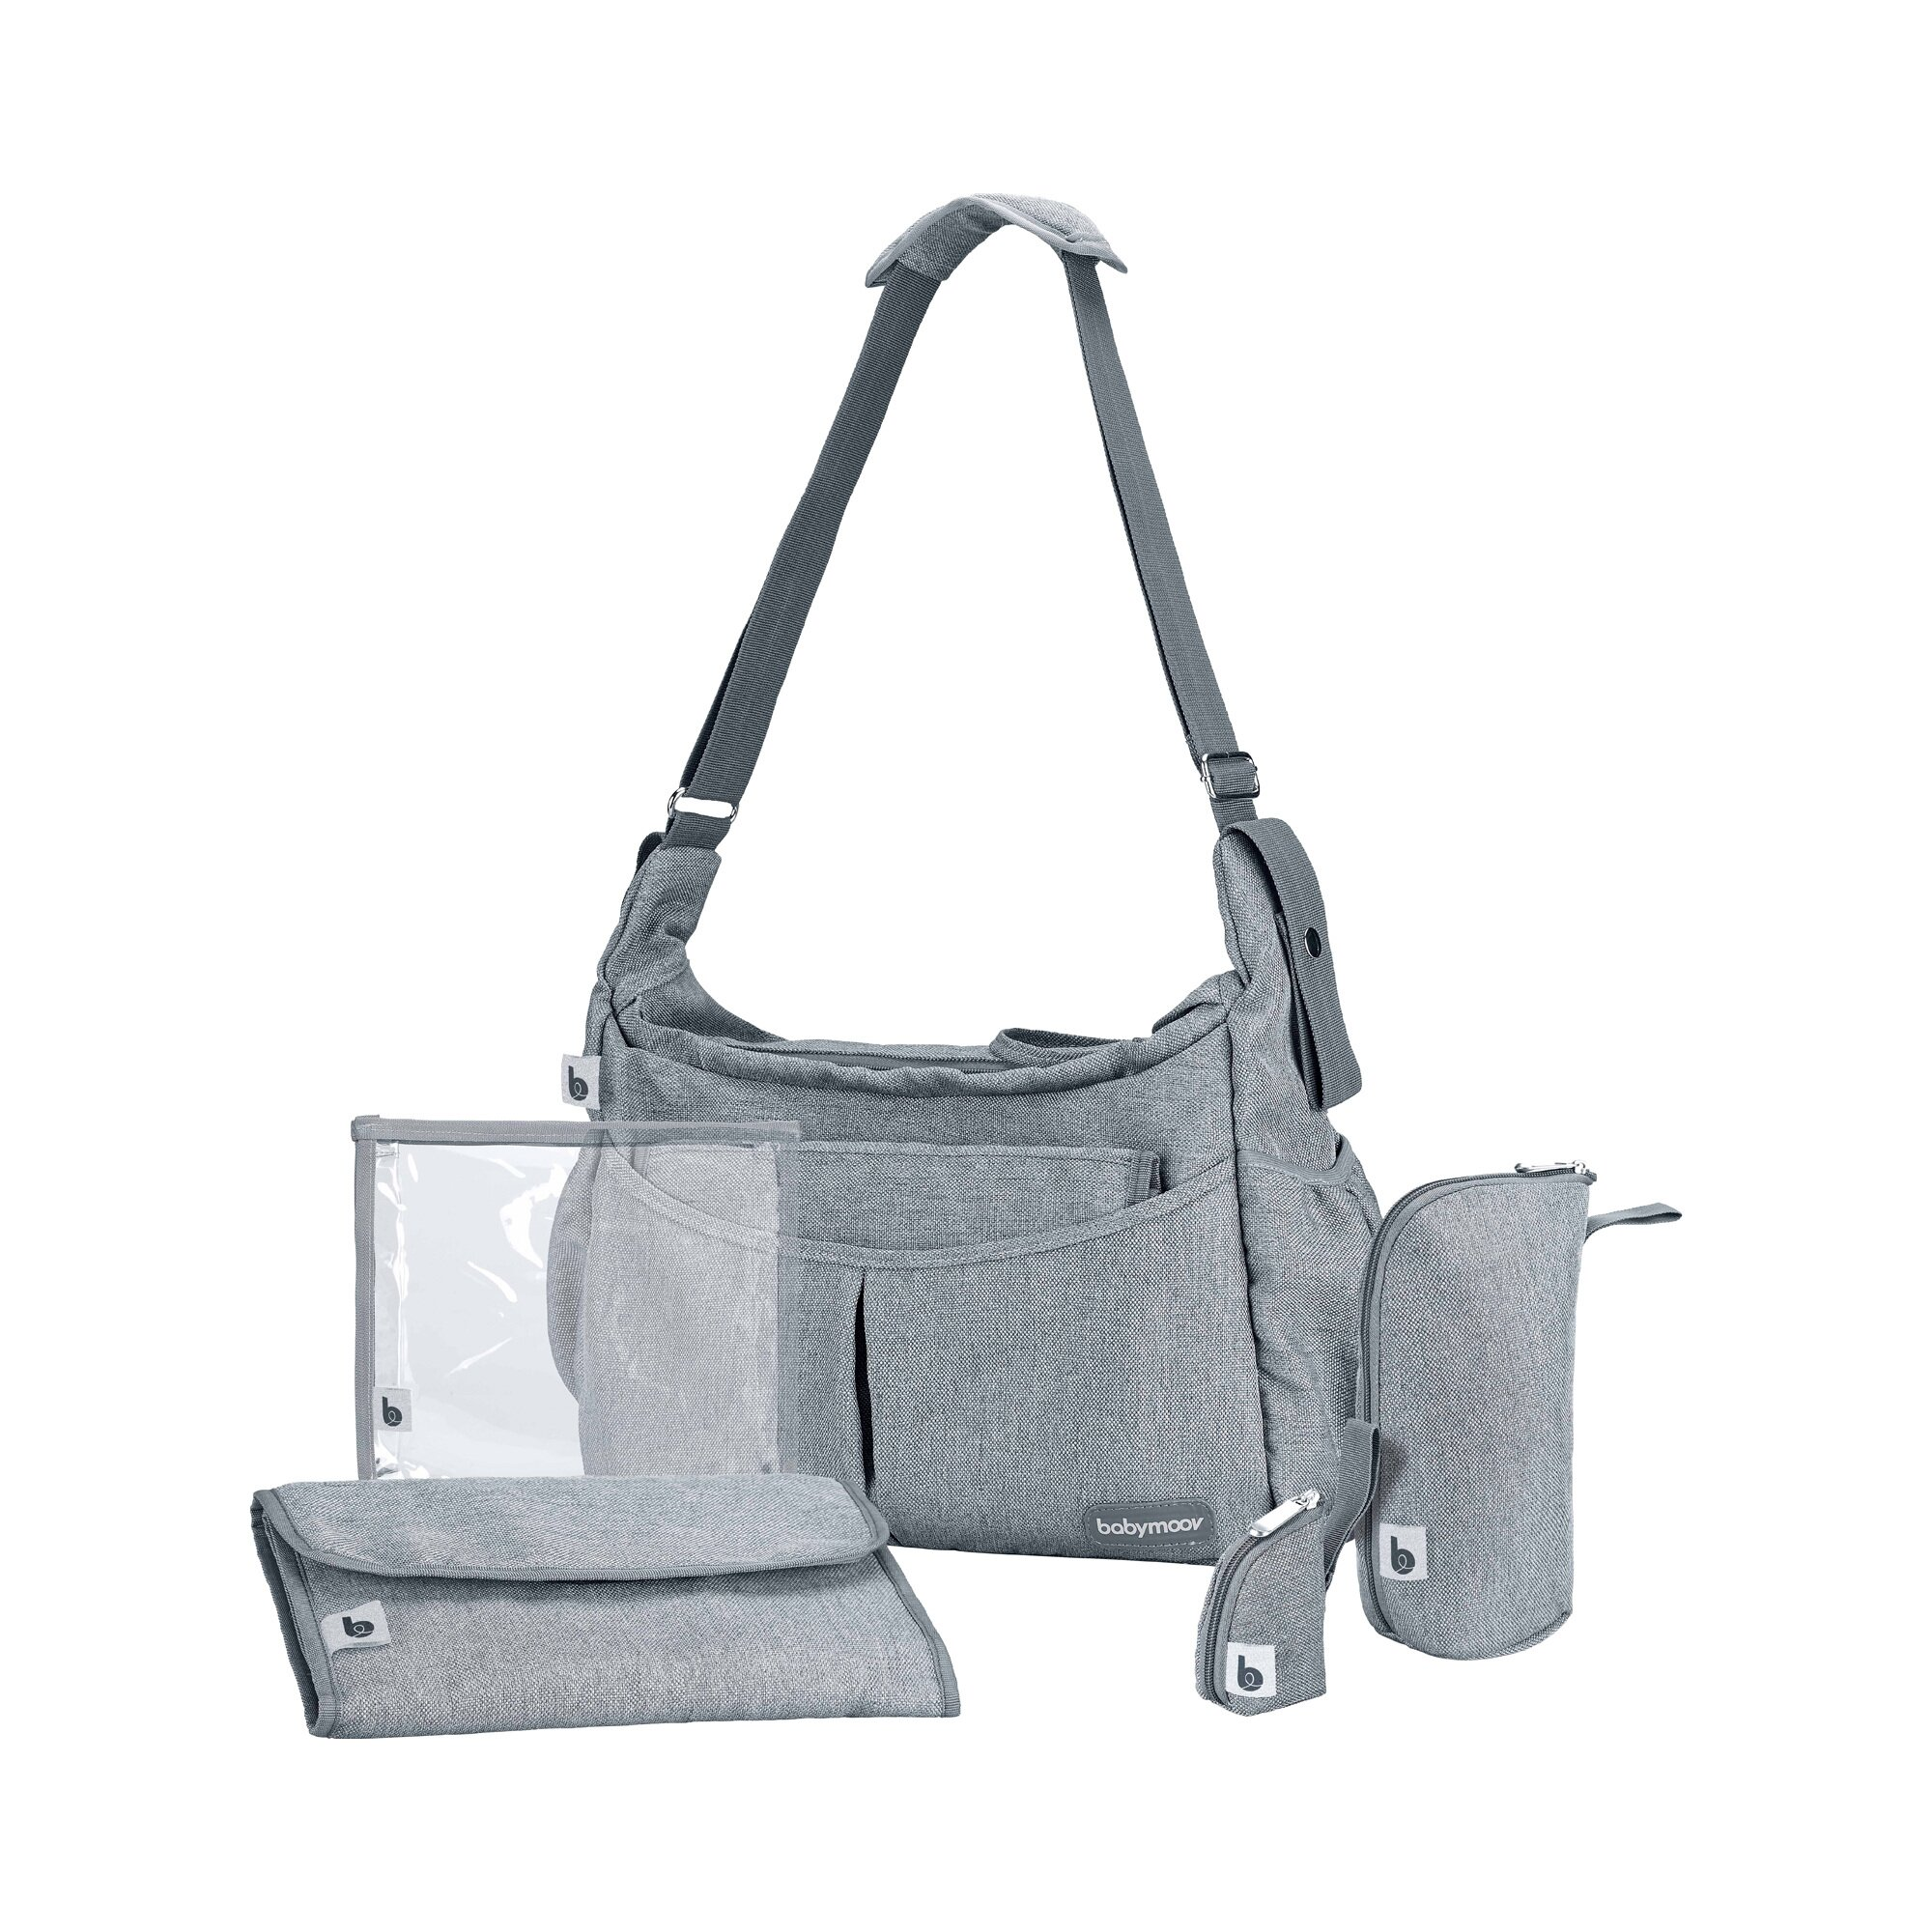 Babymoov Wickeltasche Urban Bag Smokey grau